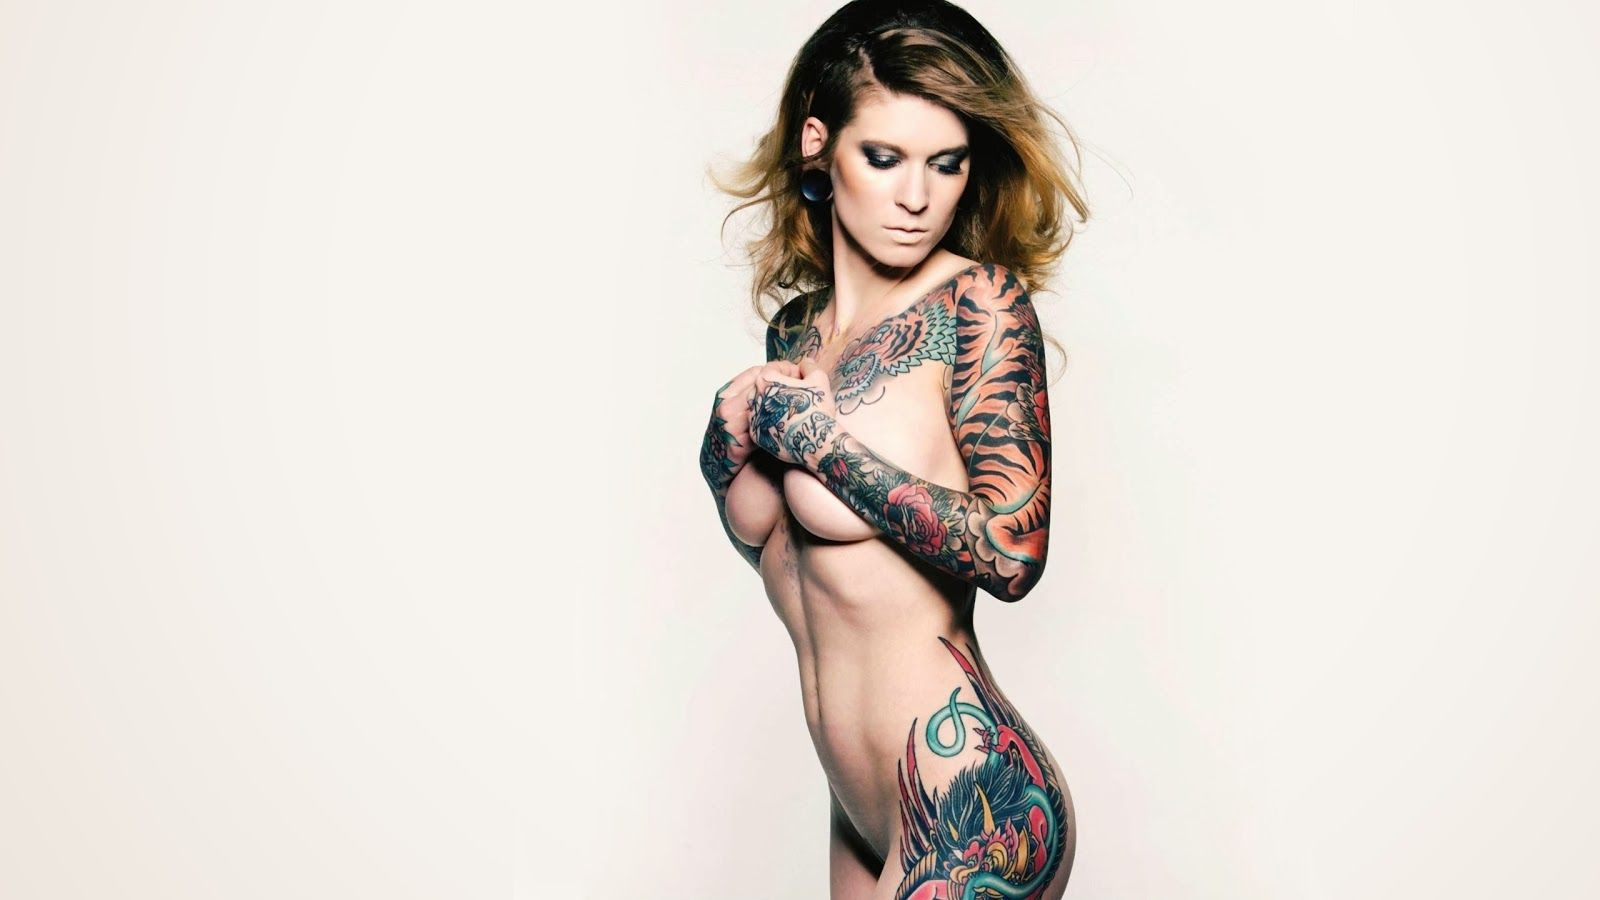 Free Download Hot Tattoo Models Wallpapers Girls High Definition